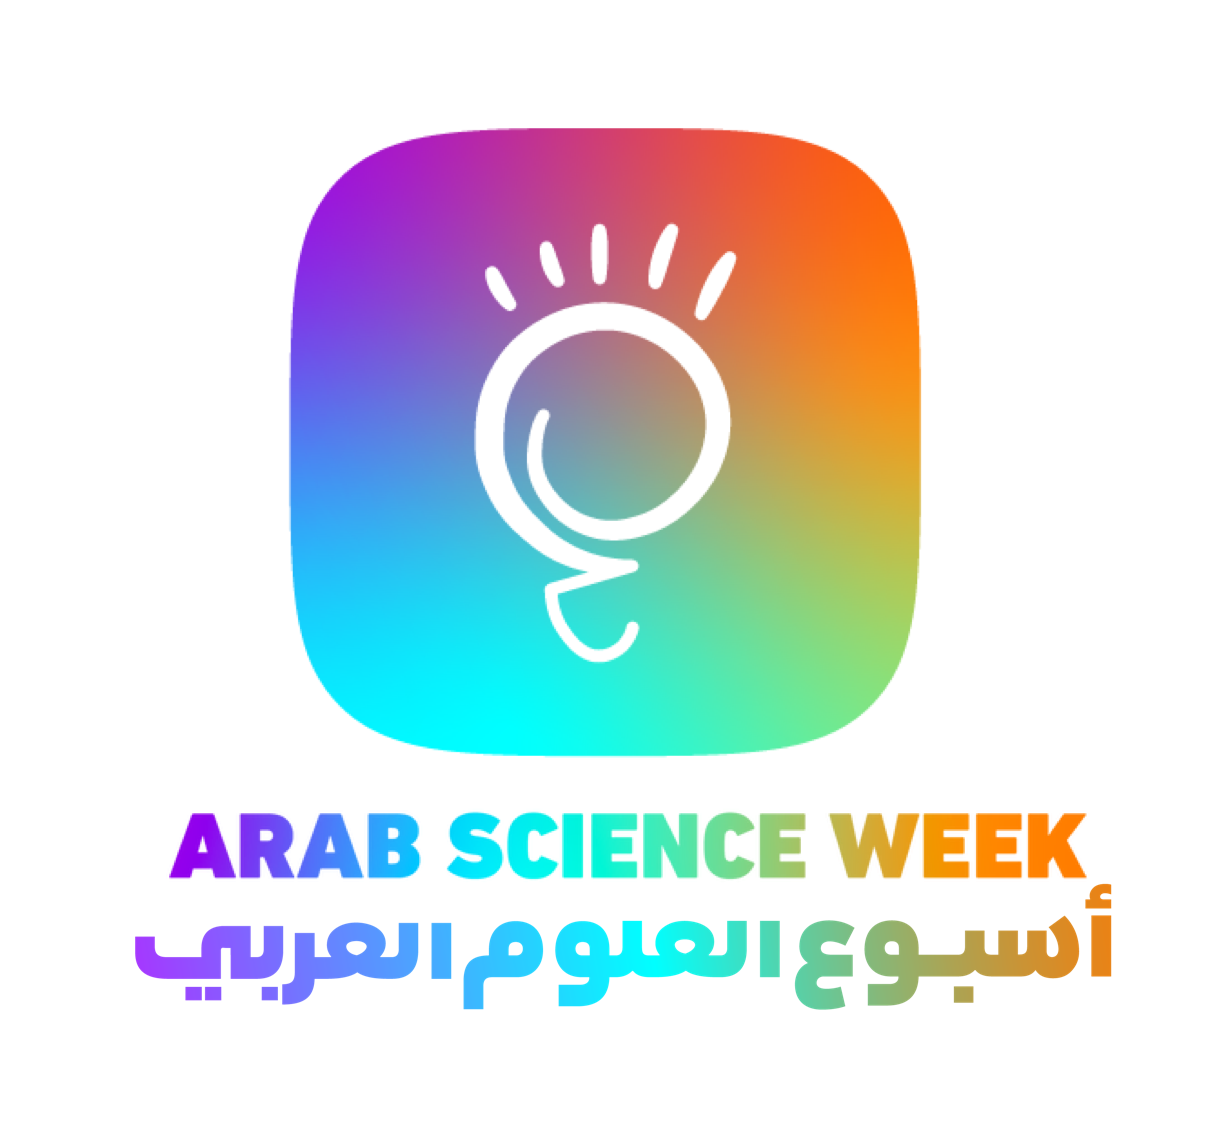 Arab Science Week